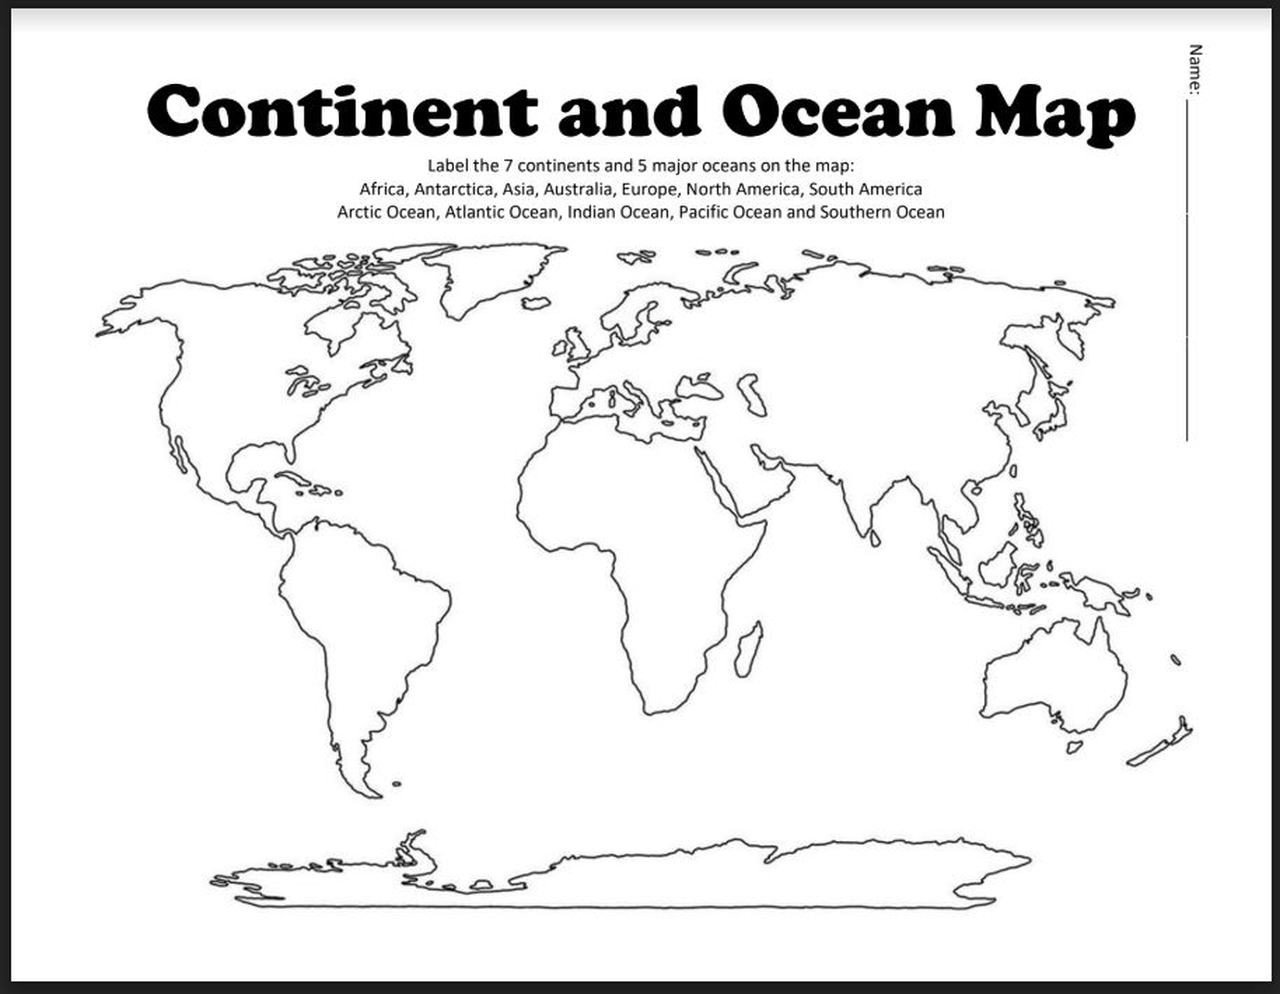 Continents and Oceans Worksheet Printable Continent and Ocean Map Worksheet Blank